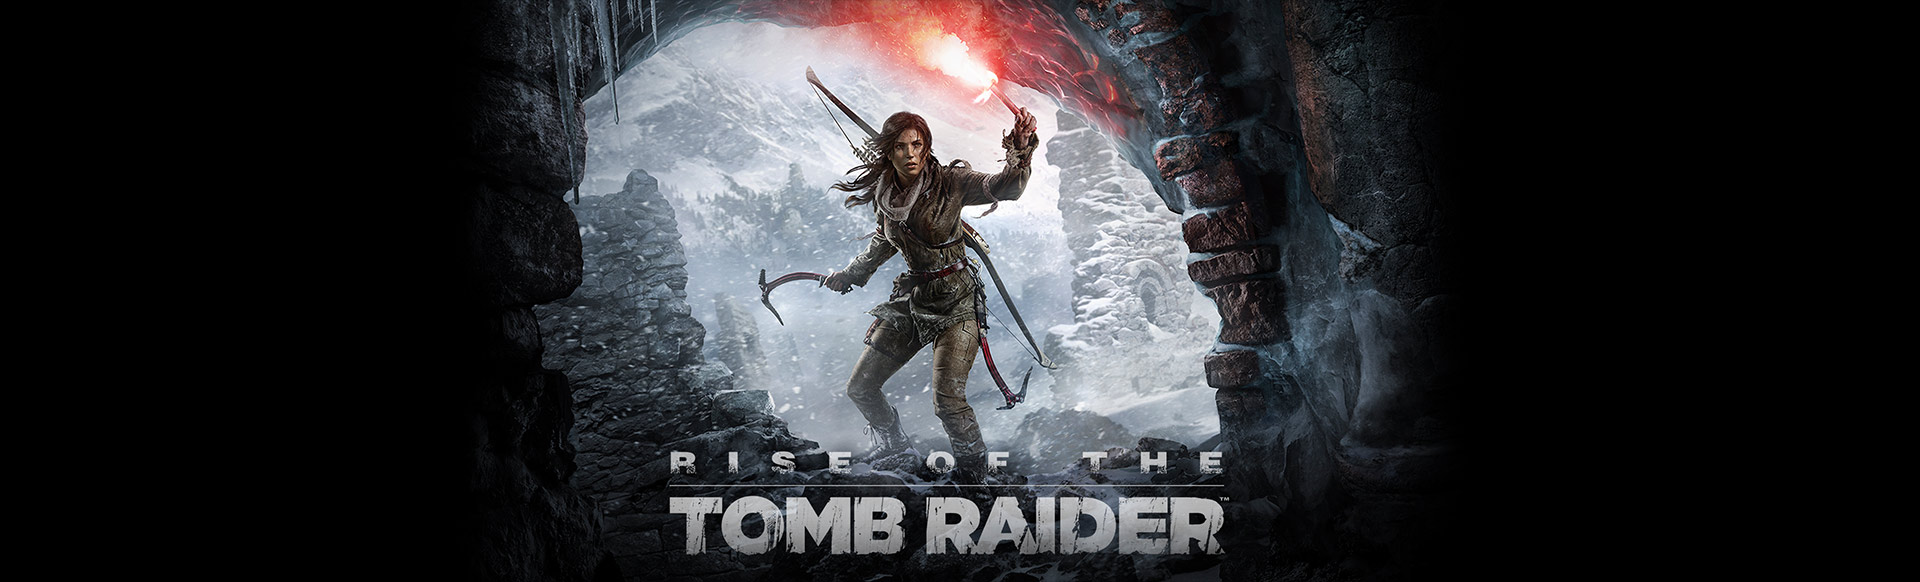 Rise of the Tomb Raider - Buy nowr